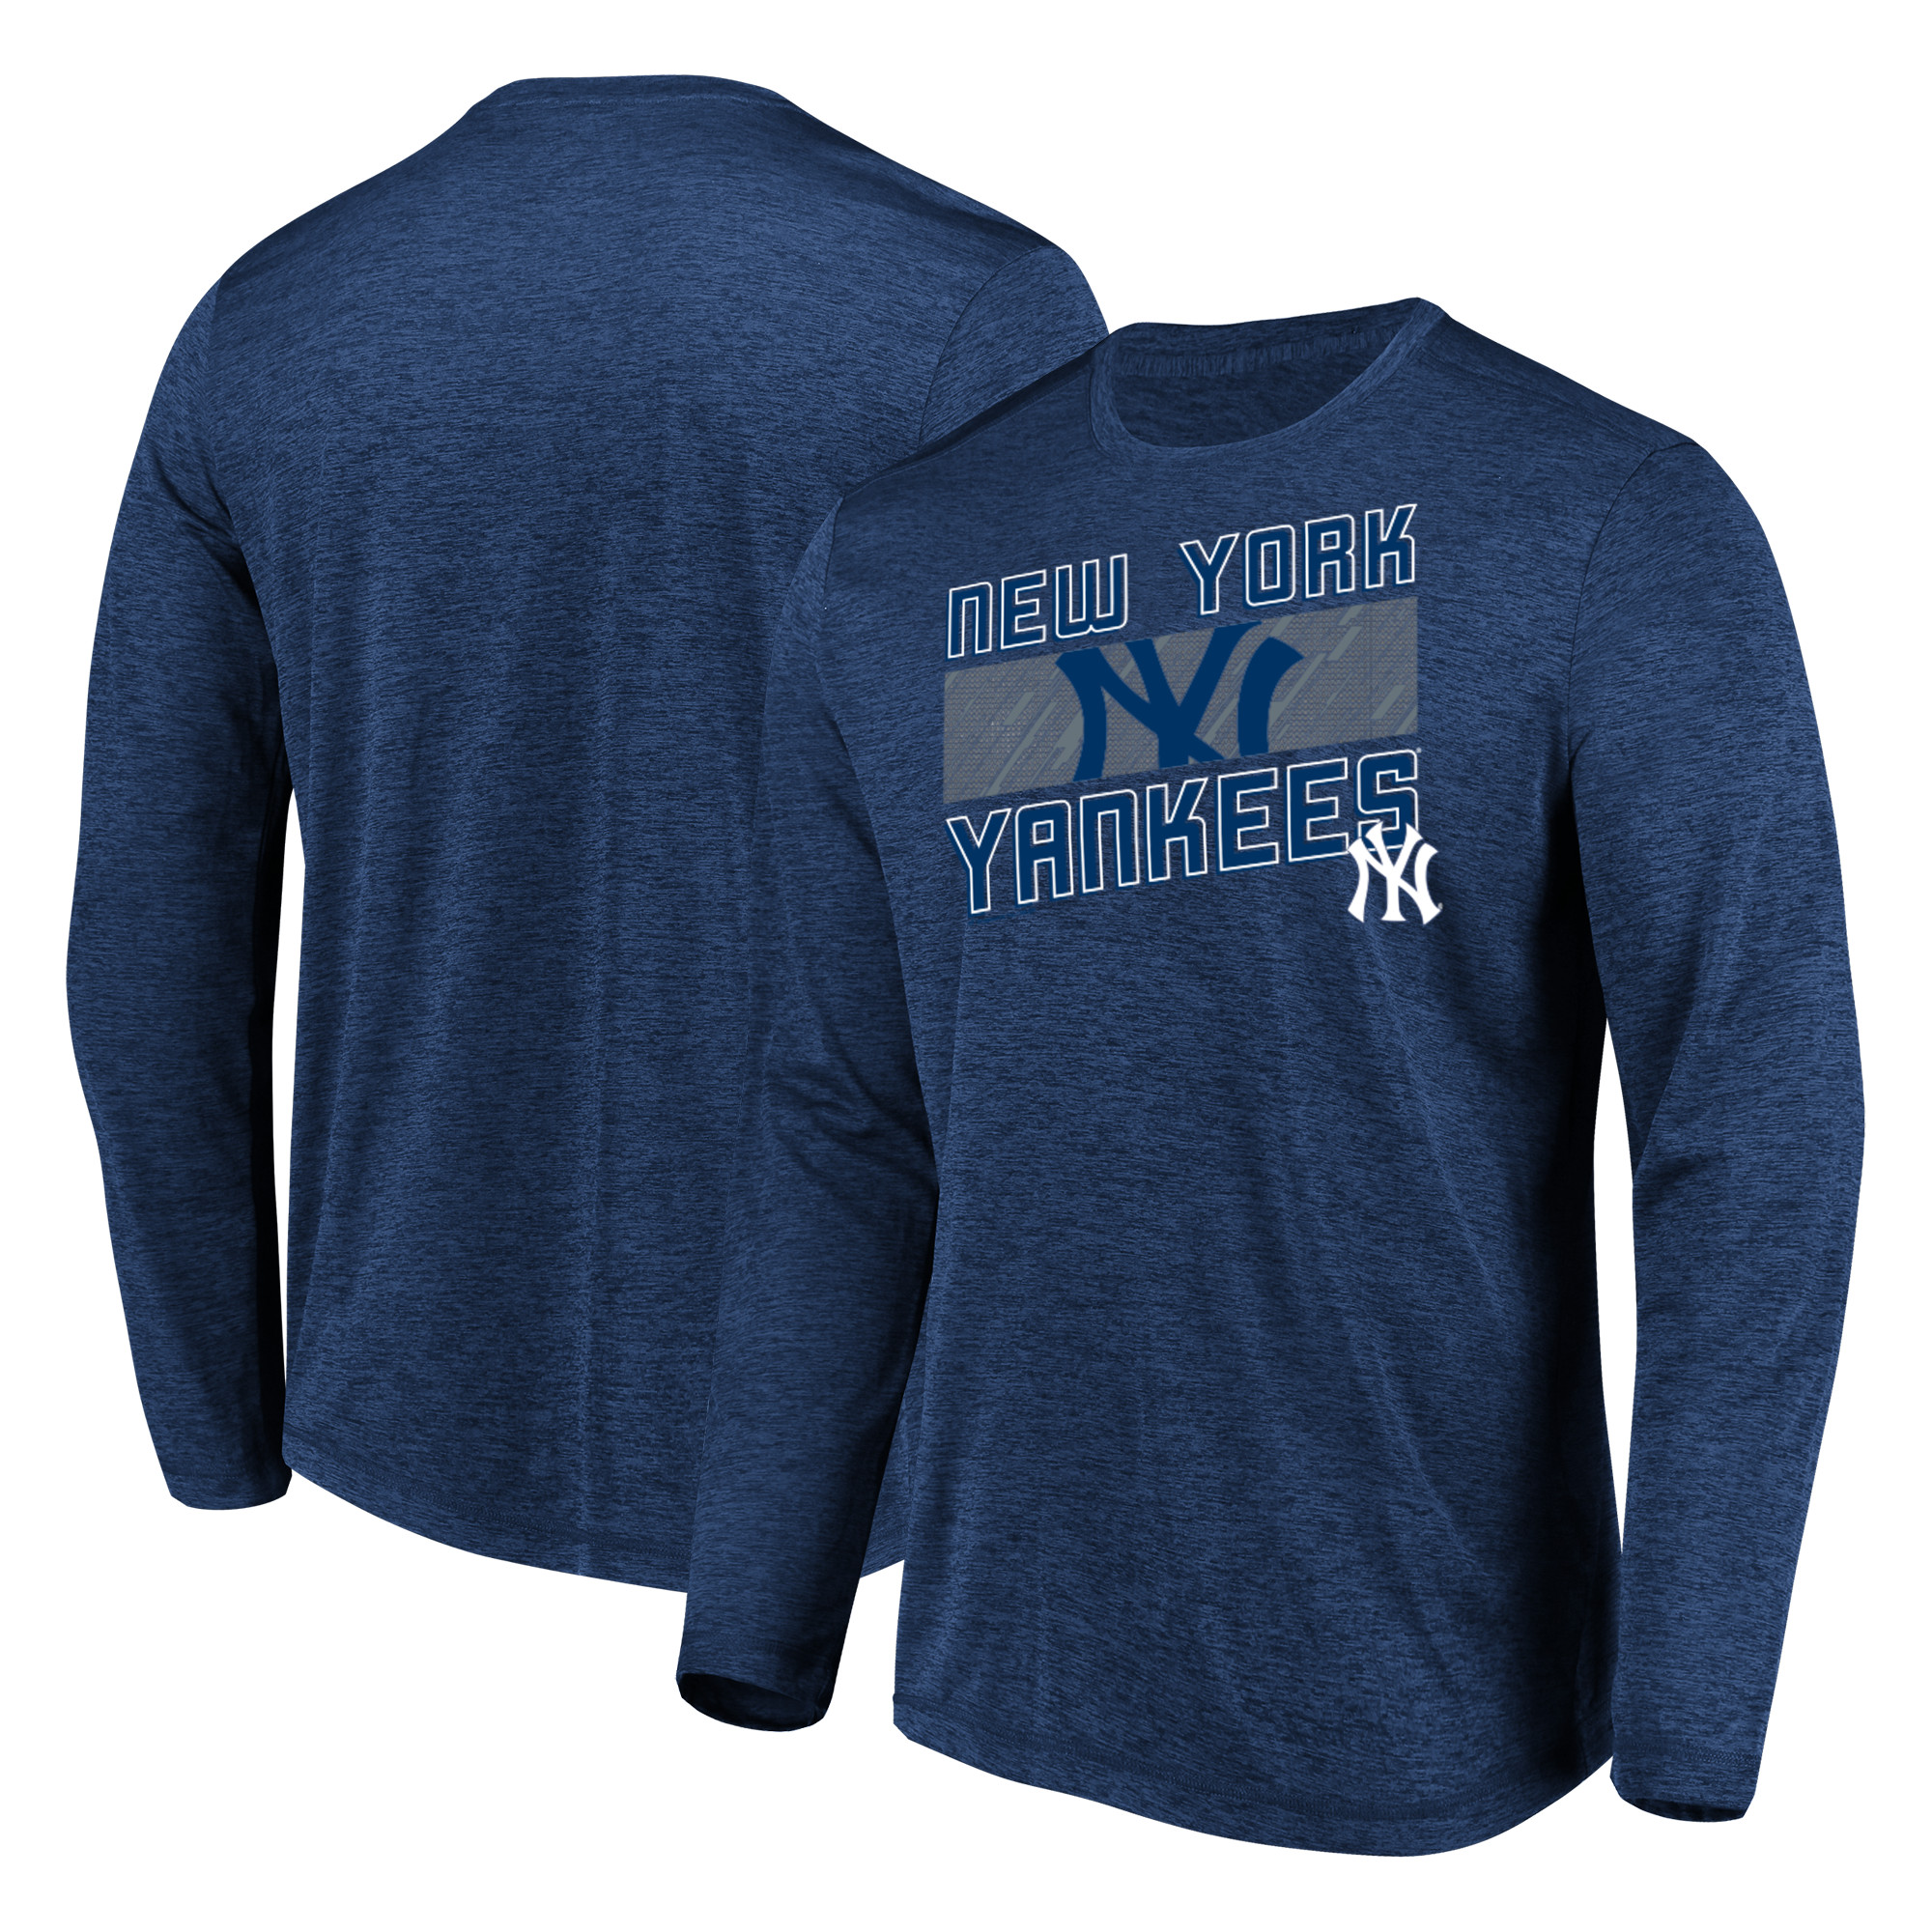 Men's Majestic Heathered Navy New York Yankees Big & Tall Long Sleeve Team T-Shirt